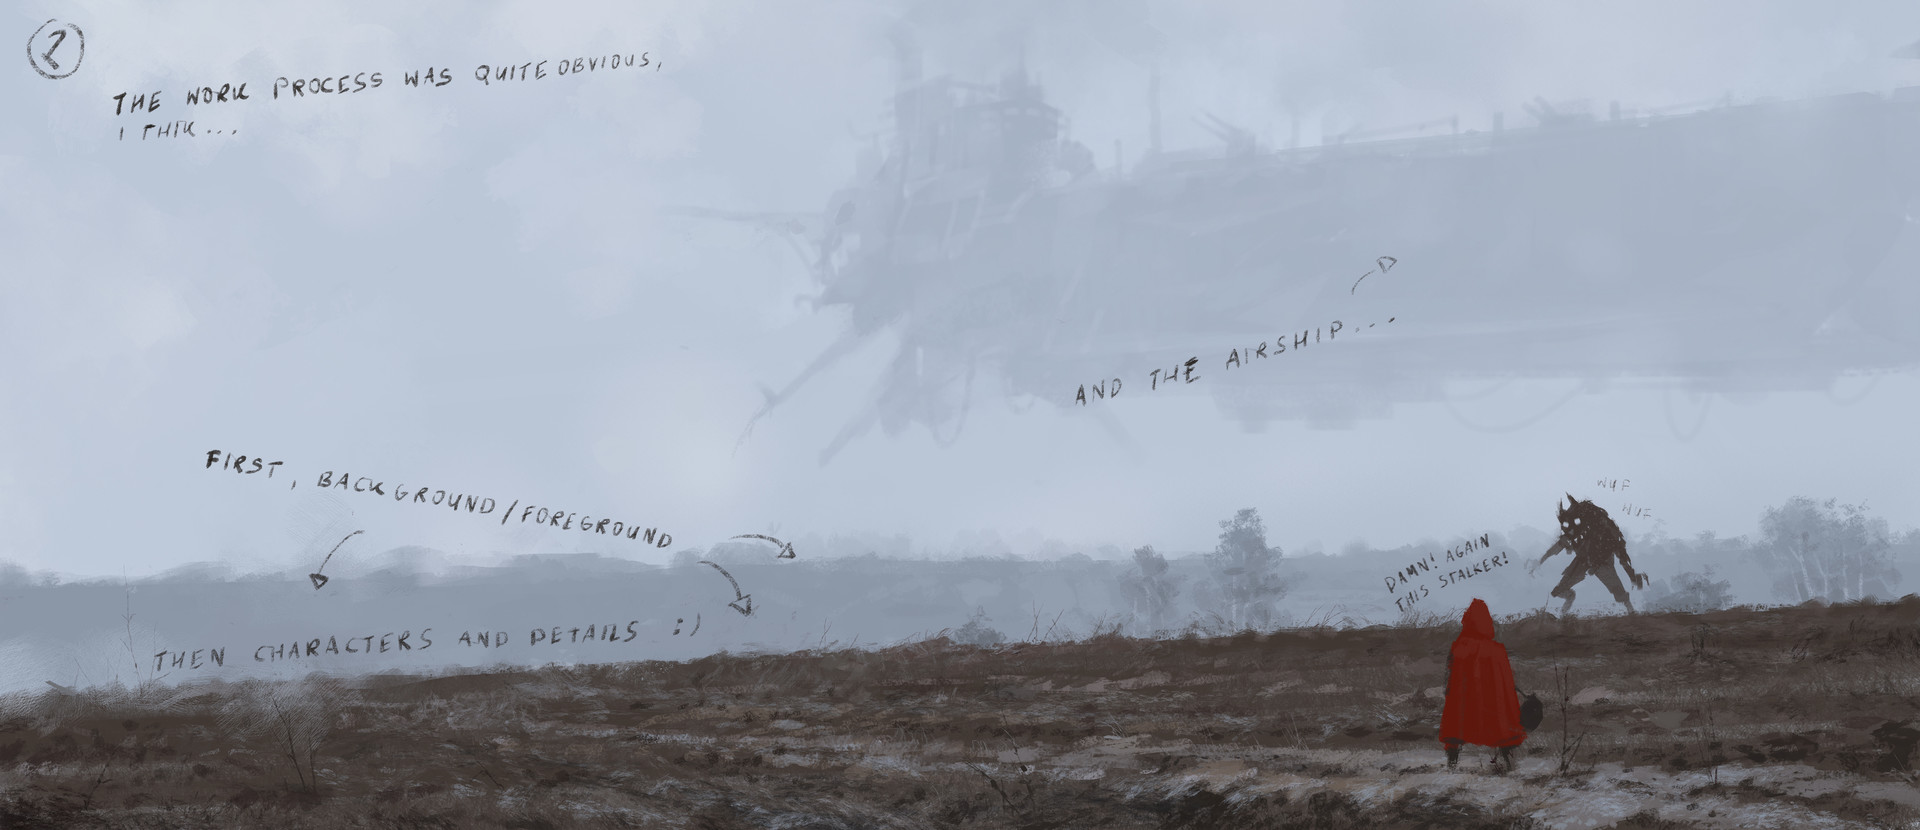 Jakub rozalski 1920 on the wings of the wind process01